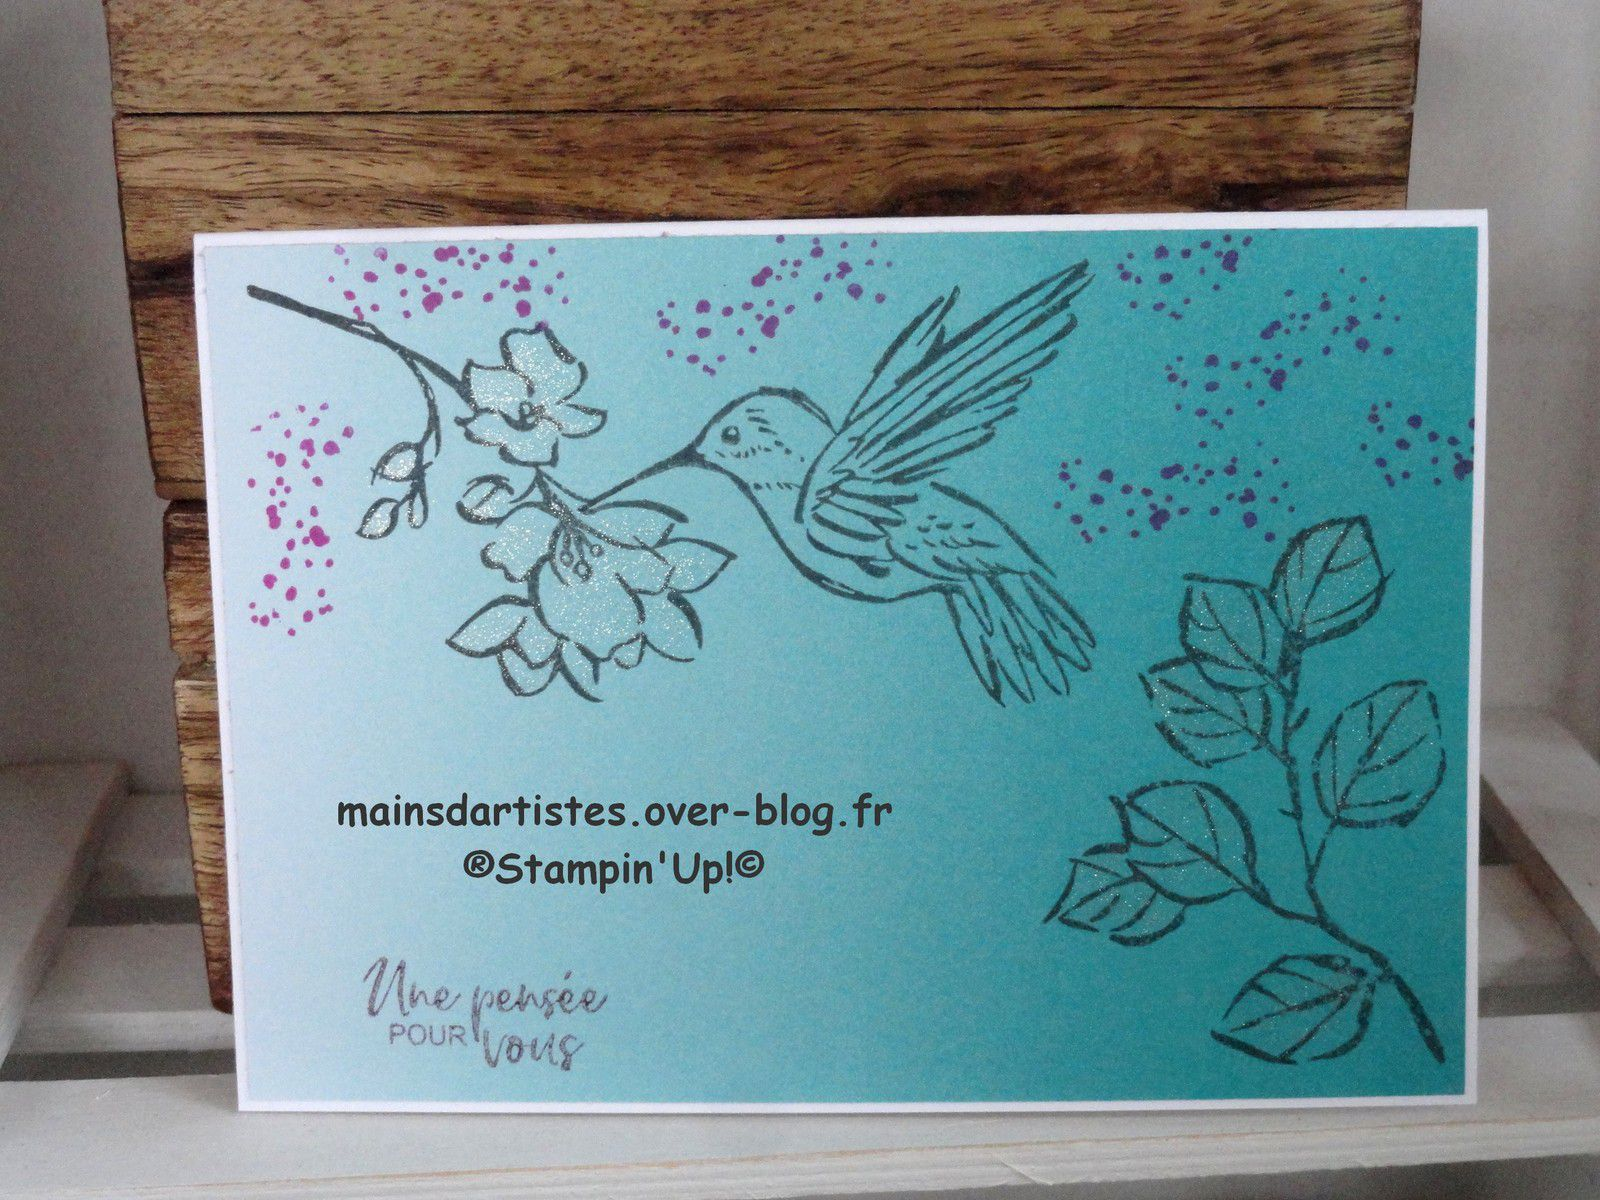 PAPIER DESIGN,OMBRESEMBLABLE,STAMPIN'UP!